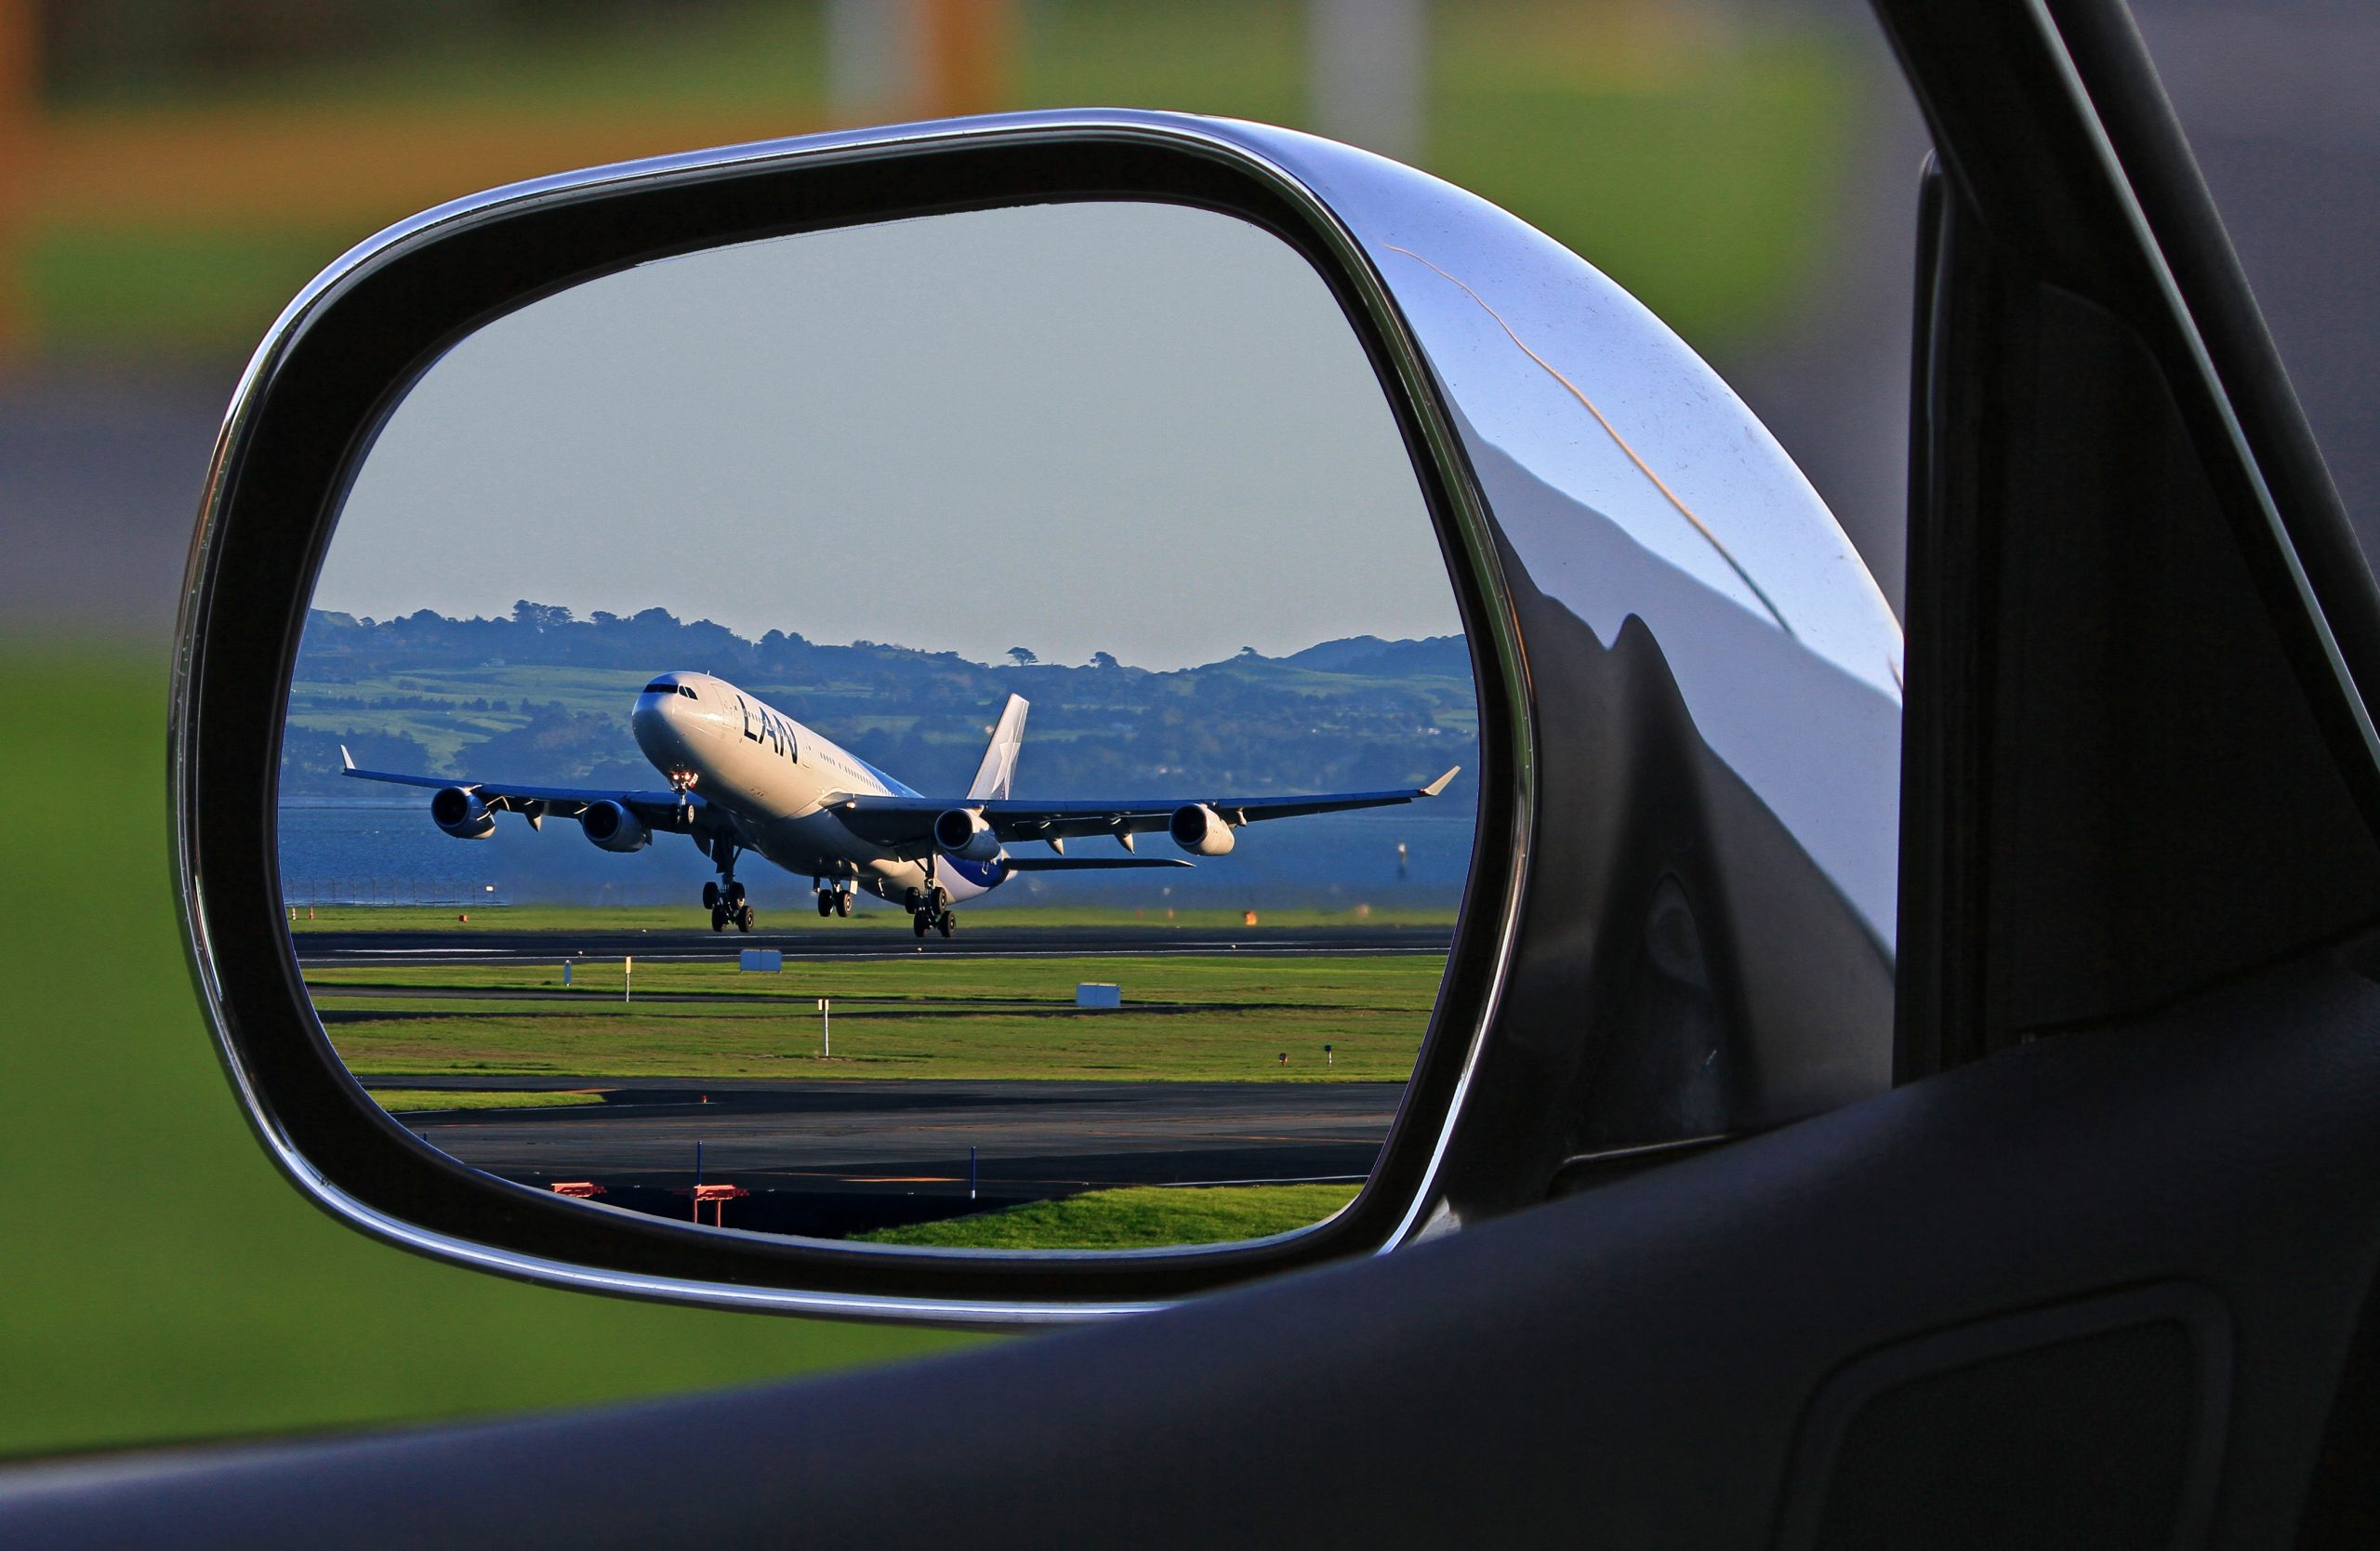 Airport-Taxi-Cars